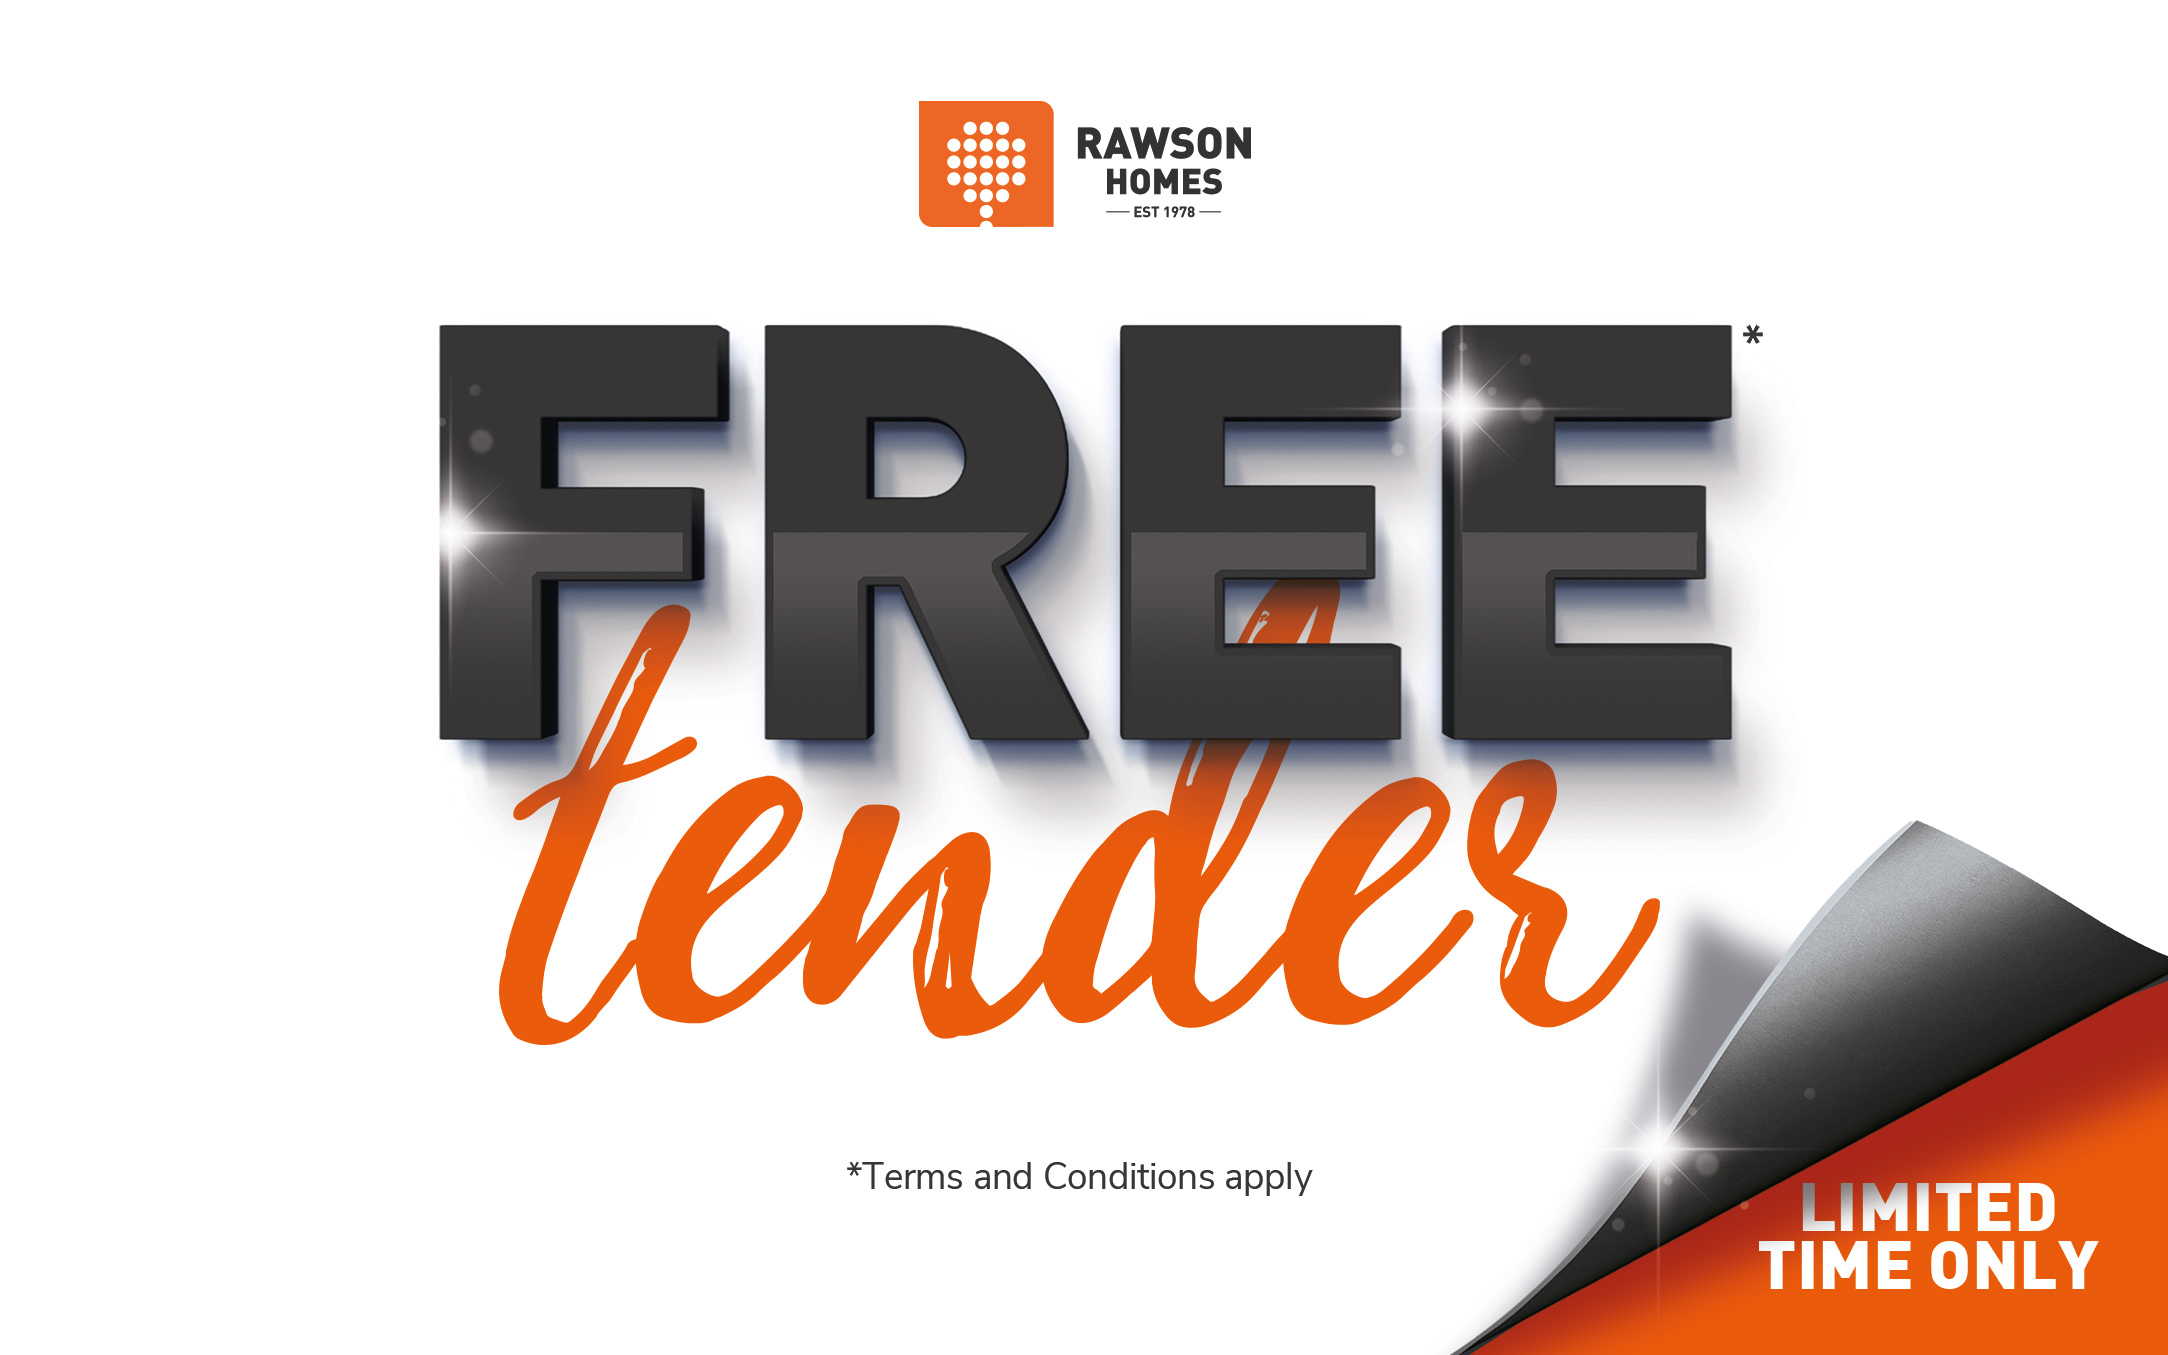 Rawson Homes free tender promotion